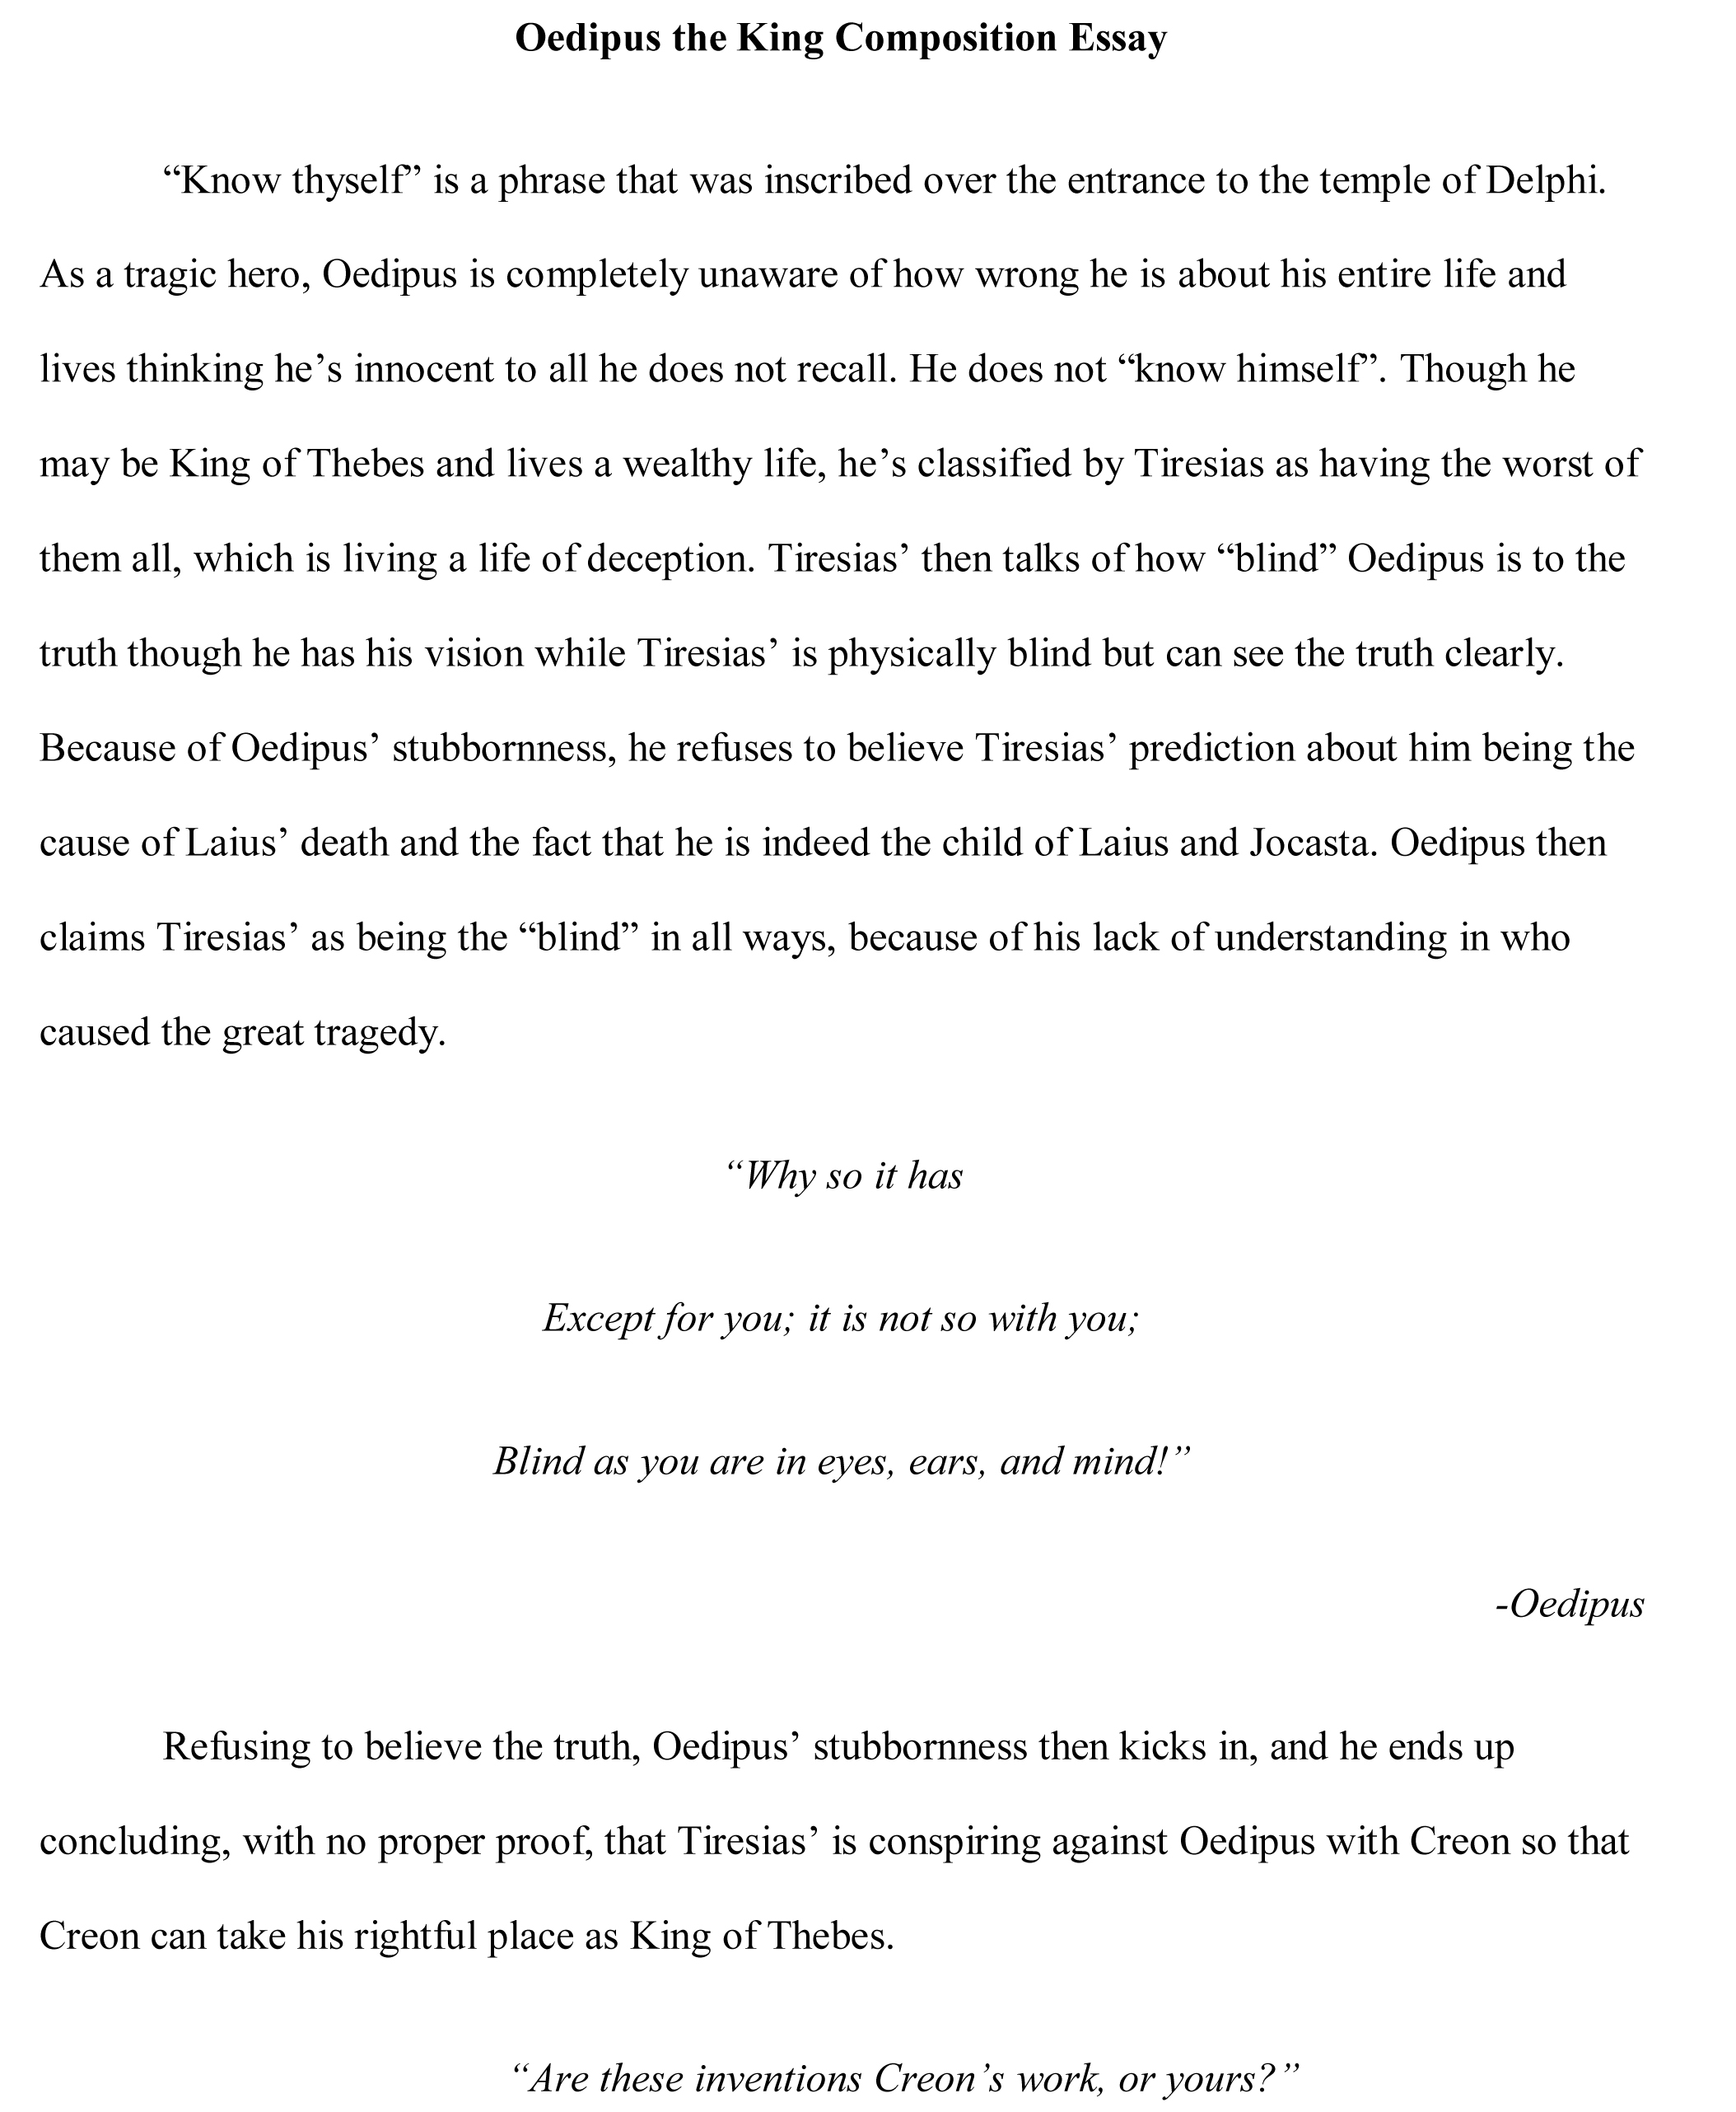 009 Oedipus Essay Free Sample Example Buy Magnificent Papers Full